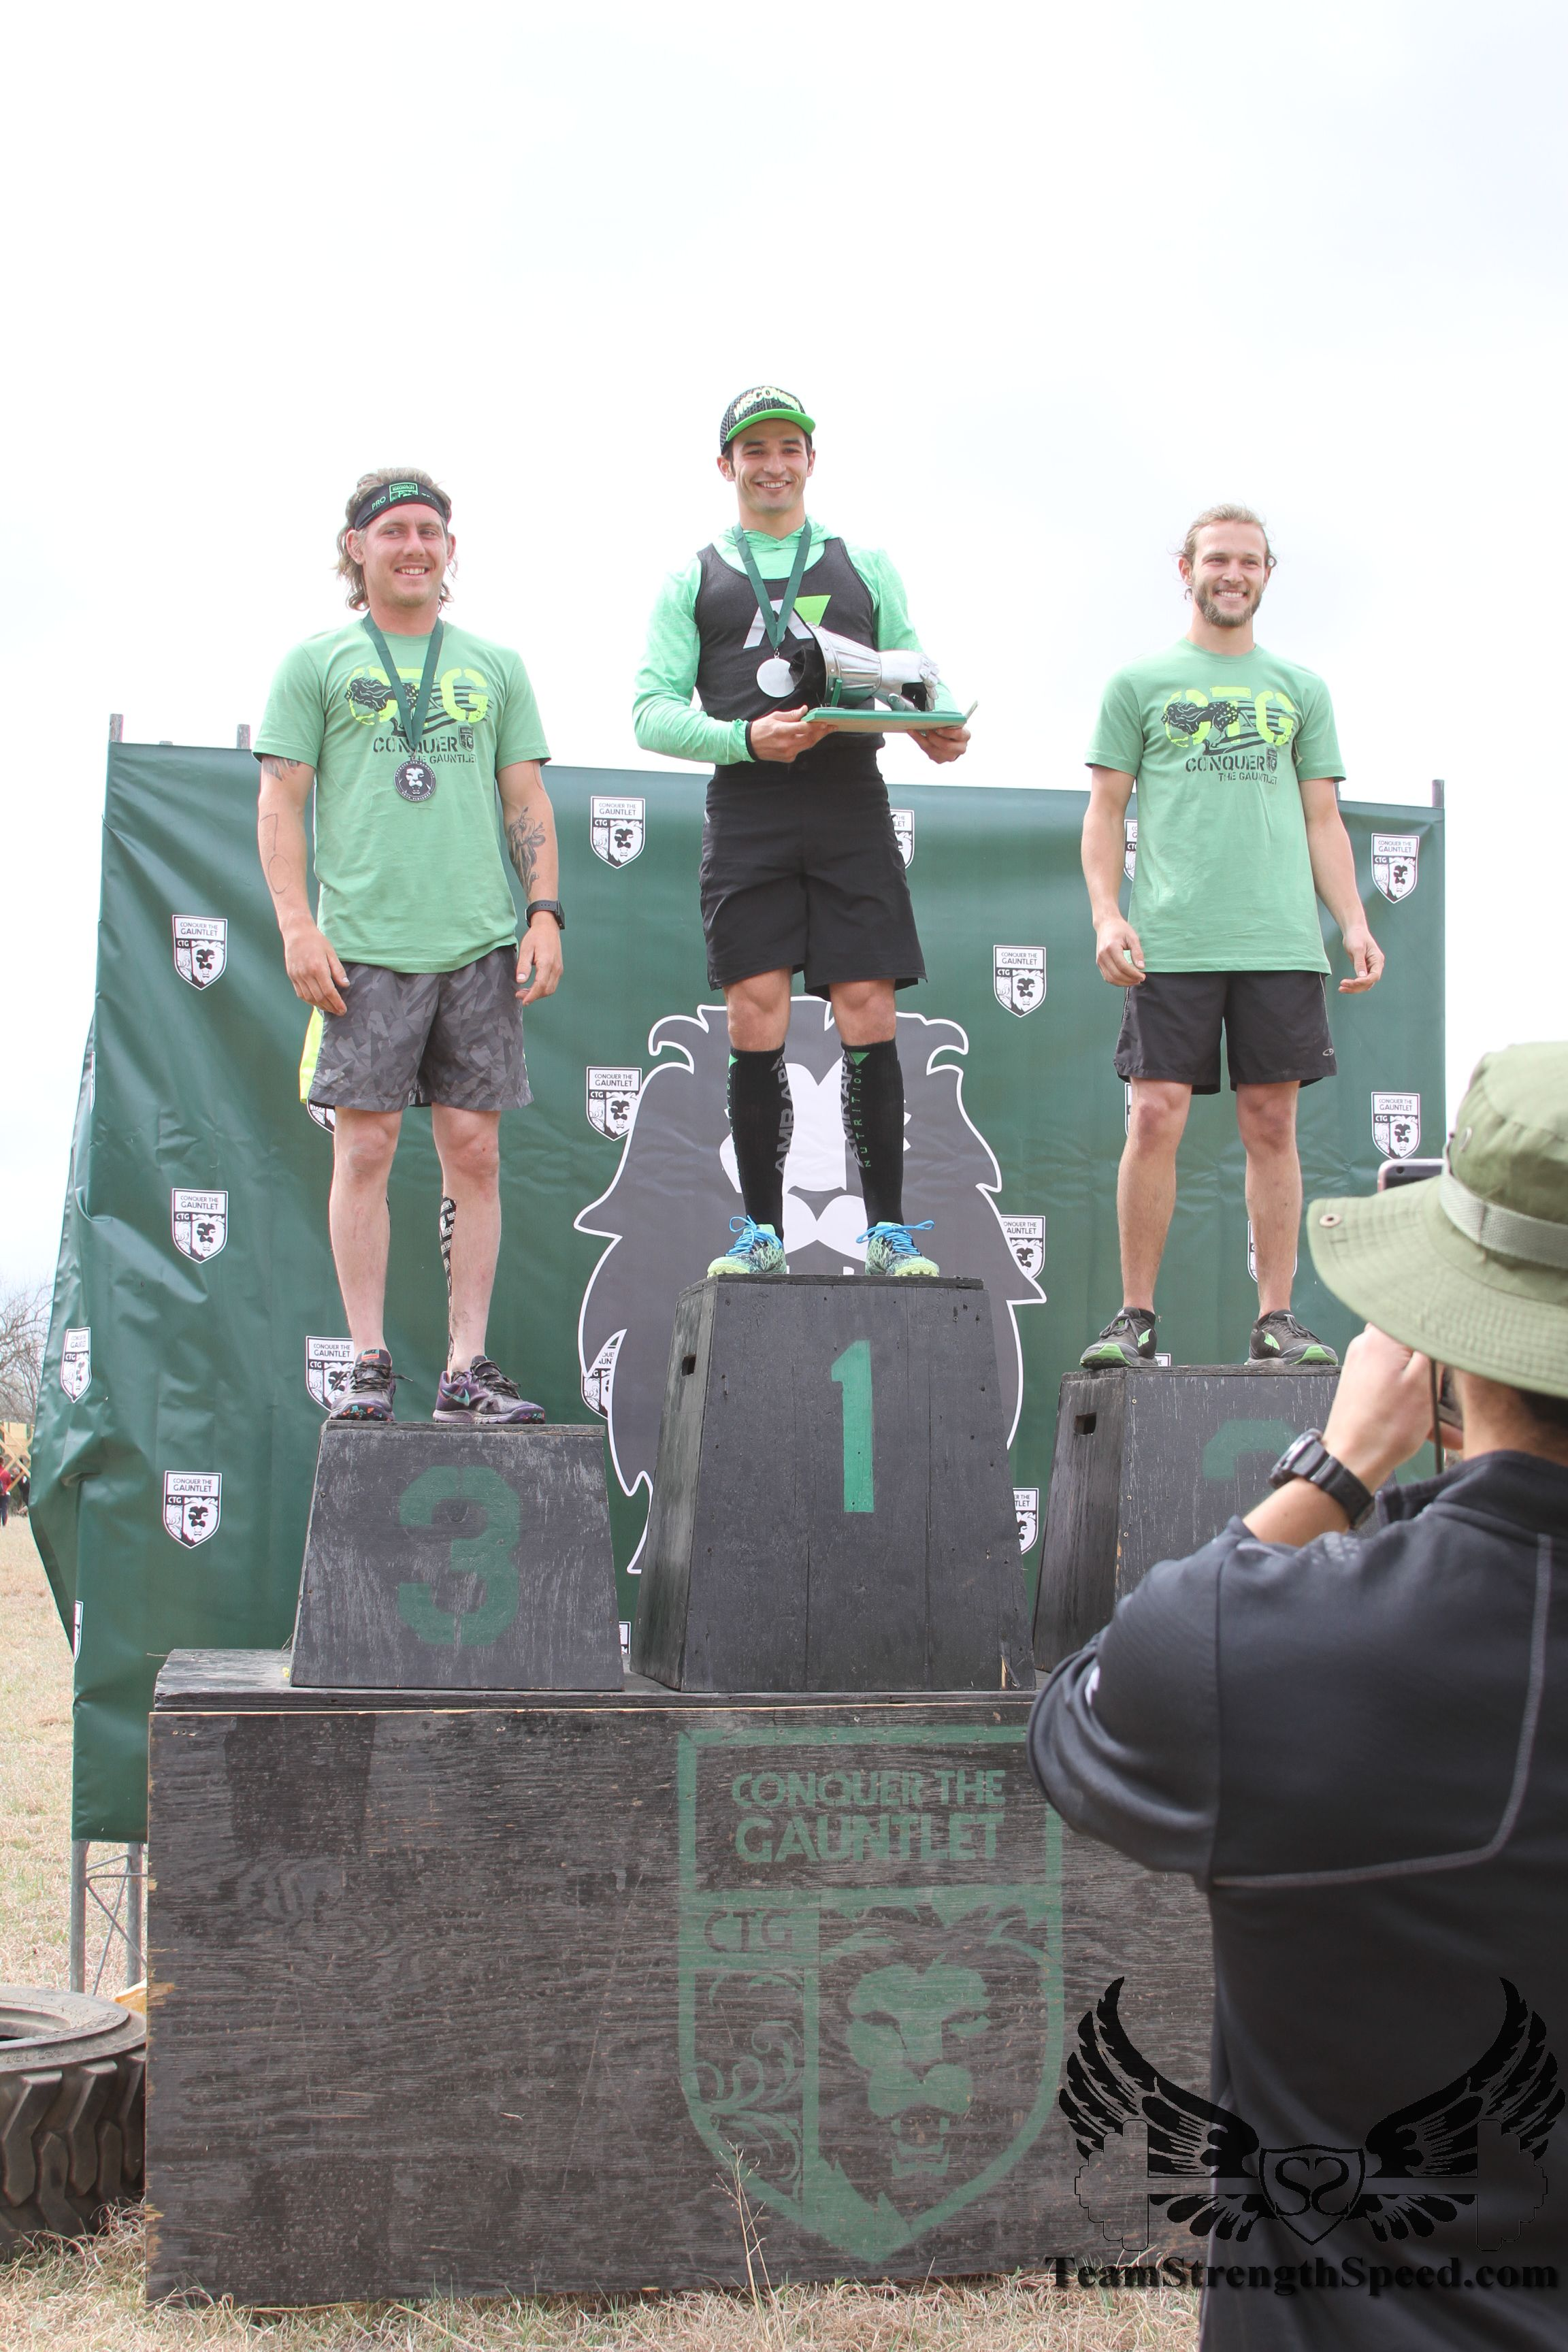 Cody Peyton (3rd), Jordan Buscemi (1st) and Bryce Robinson (2nd) stand on top of the podium. Jordan walking away with the metal Gauntlet showing his overall victory.